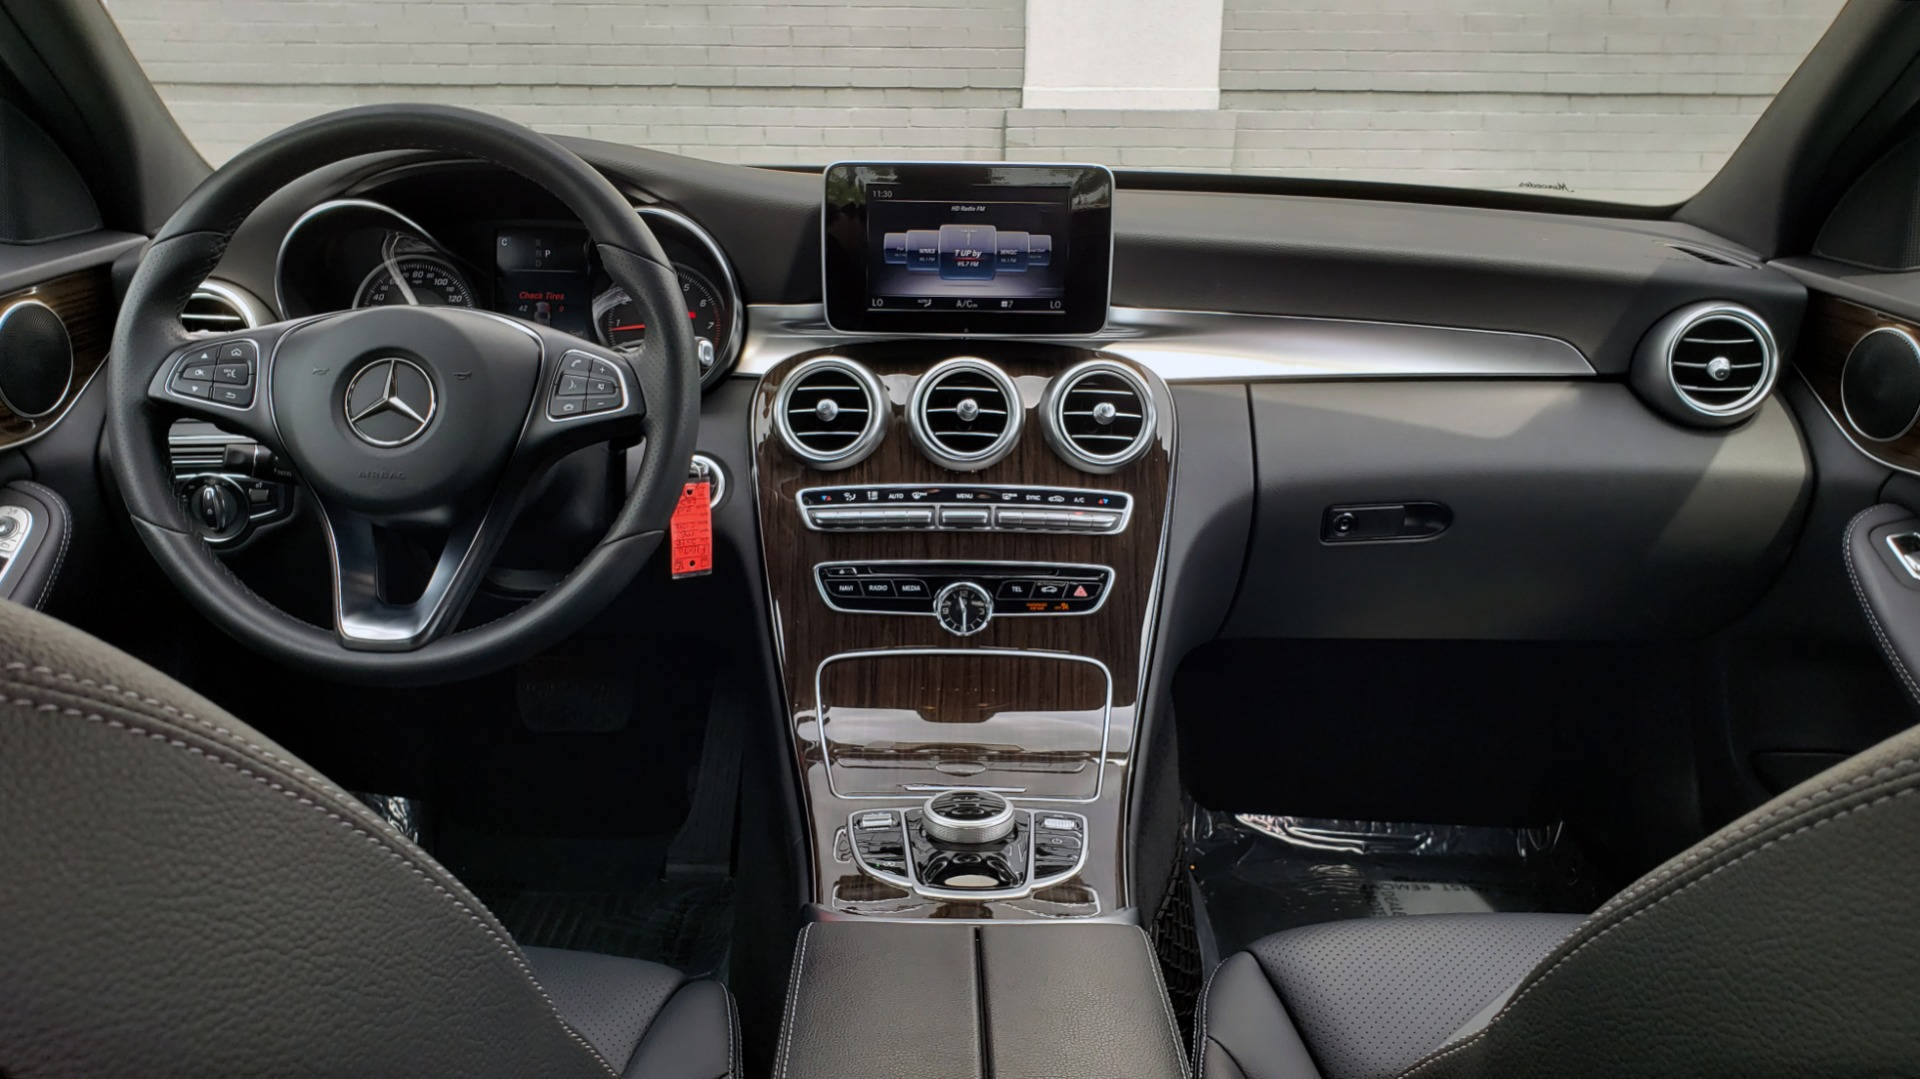 Used 2018 Mercedes-Benz C-CLASS C 300 PREMIUM / HTD STS / APPLE CARPLAY / 18IN WHEELS / REARVIEW for sale $24,795 at Formula Imports in Charlotte NC 28227 78